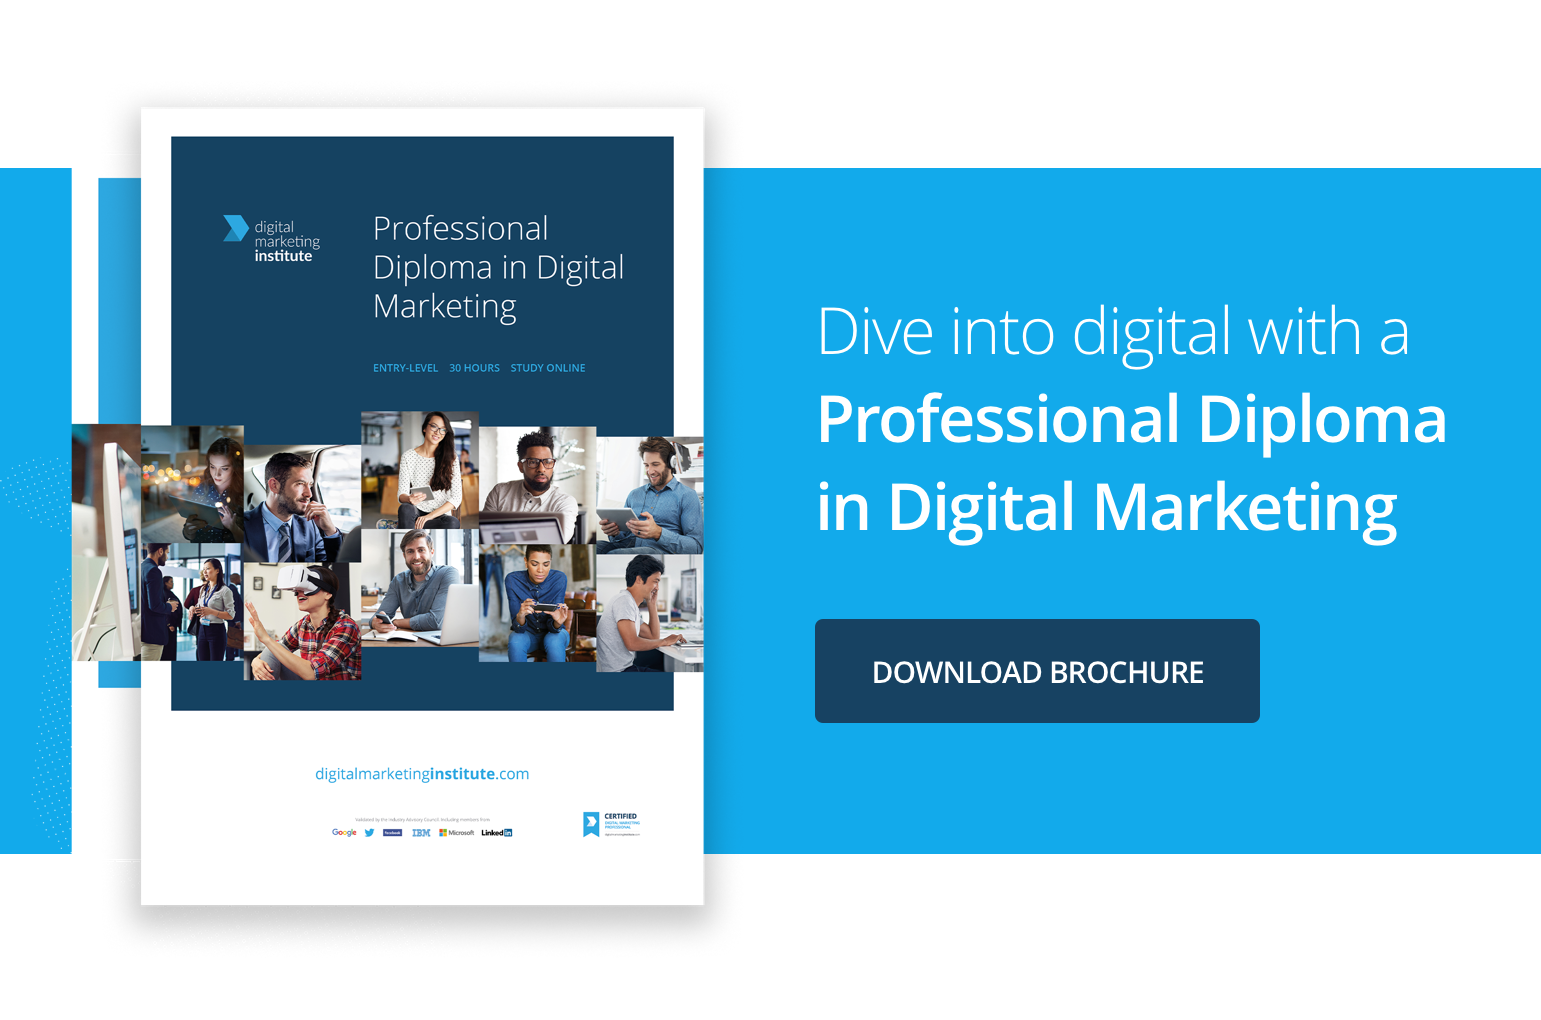 Dive into digital with a Professional Diploma in Digital Marketing